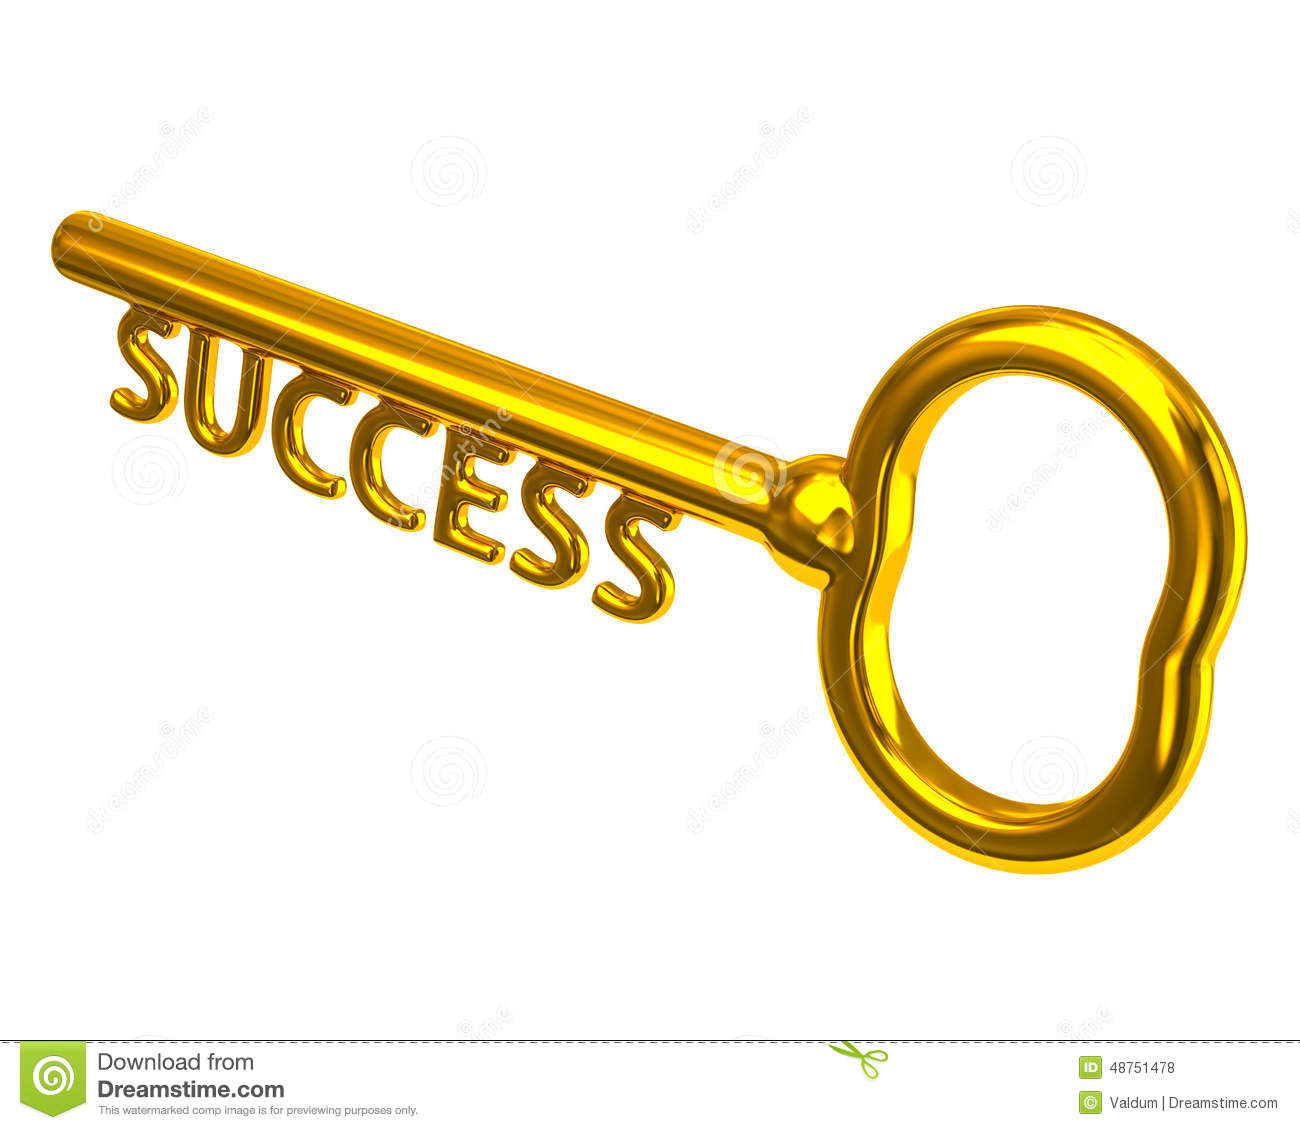 english is a golden key for success Key quotes from brainyquote, an extensive collection of quotations by famous authors, celebrities, and newsmakers  education is the key to unlock the golden door of freedom george.